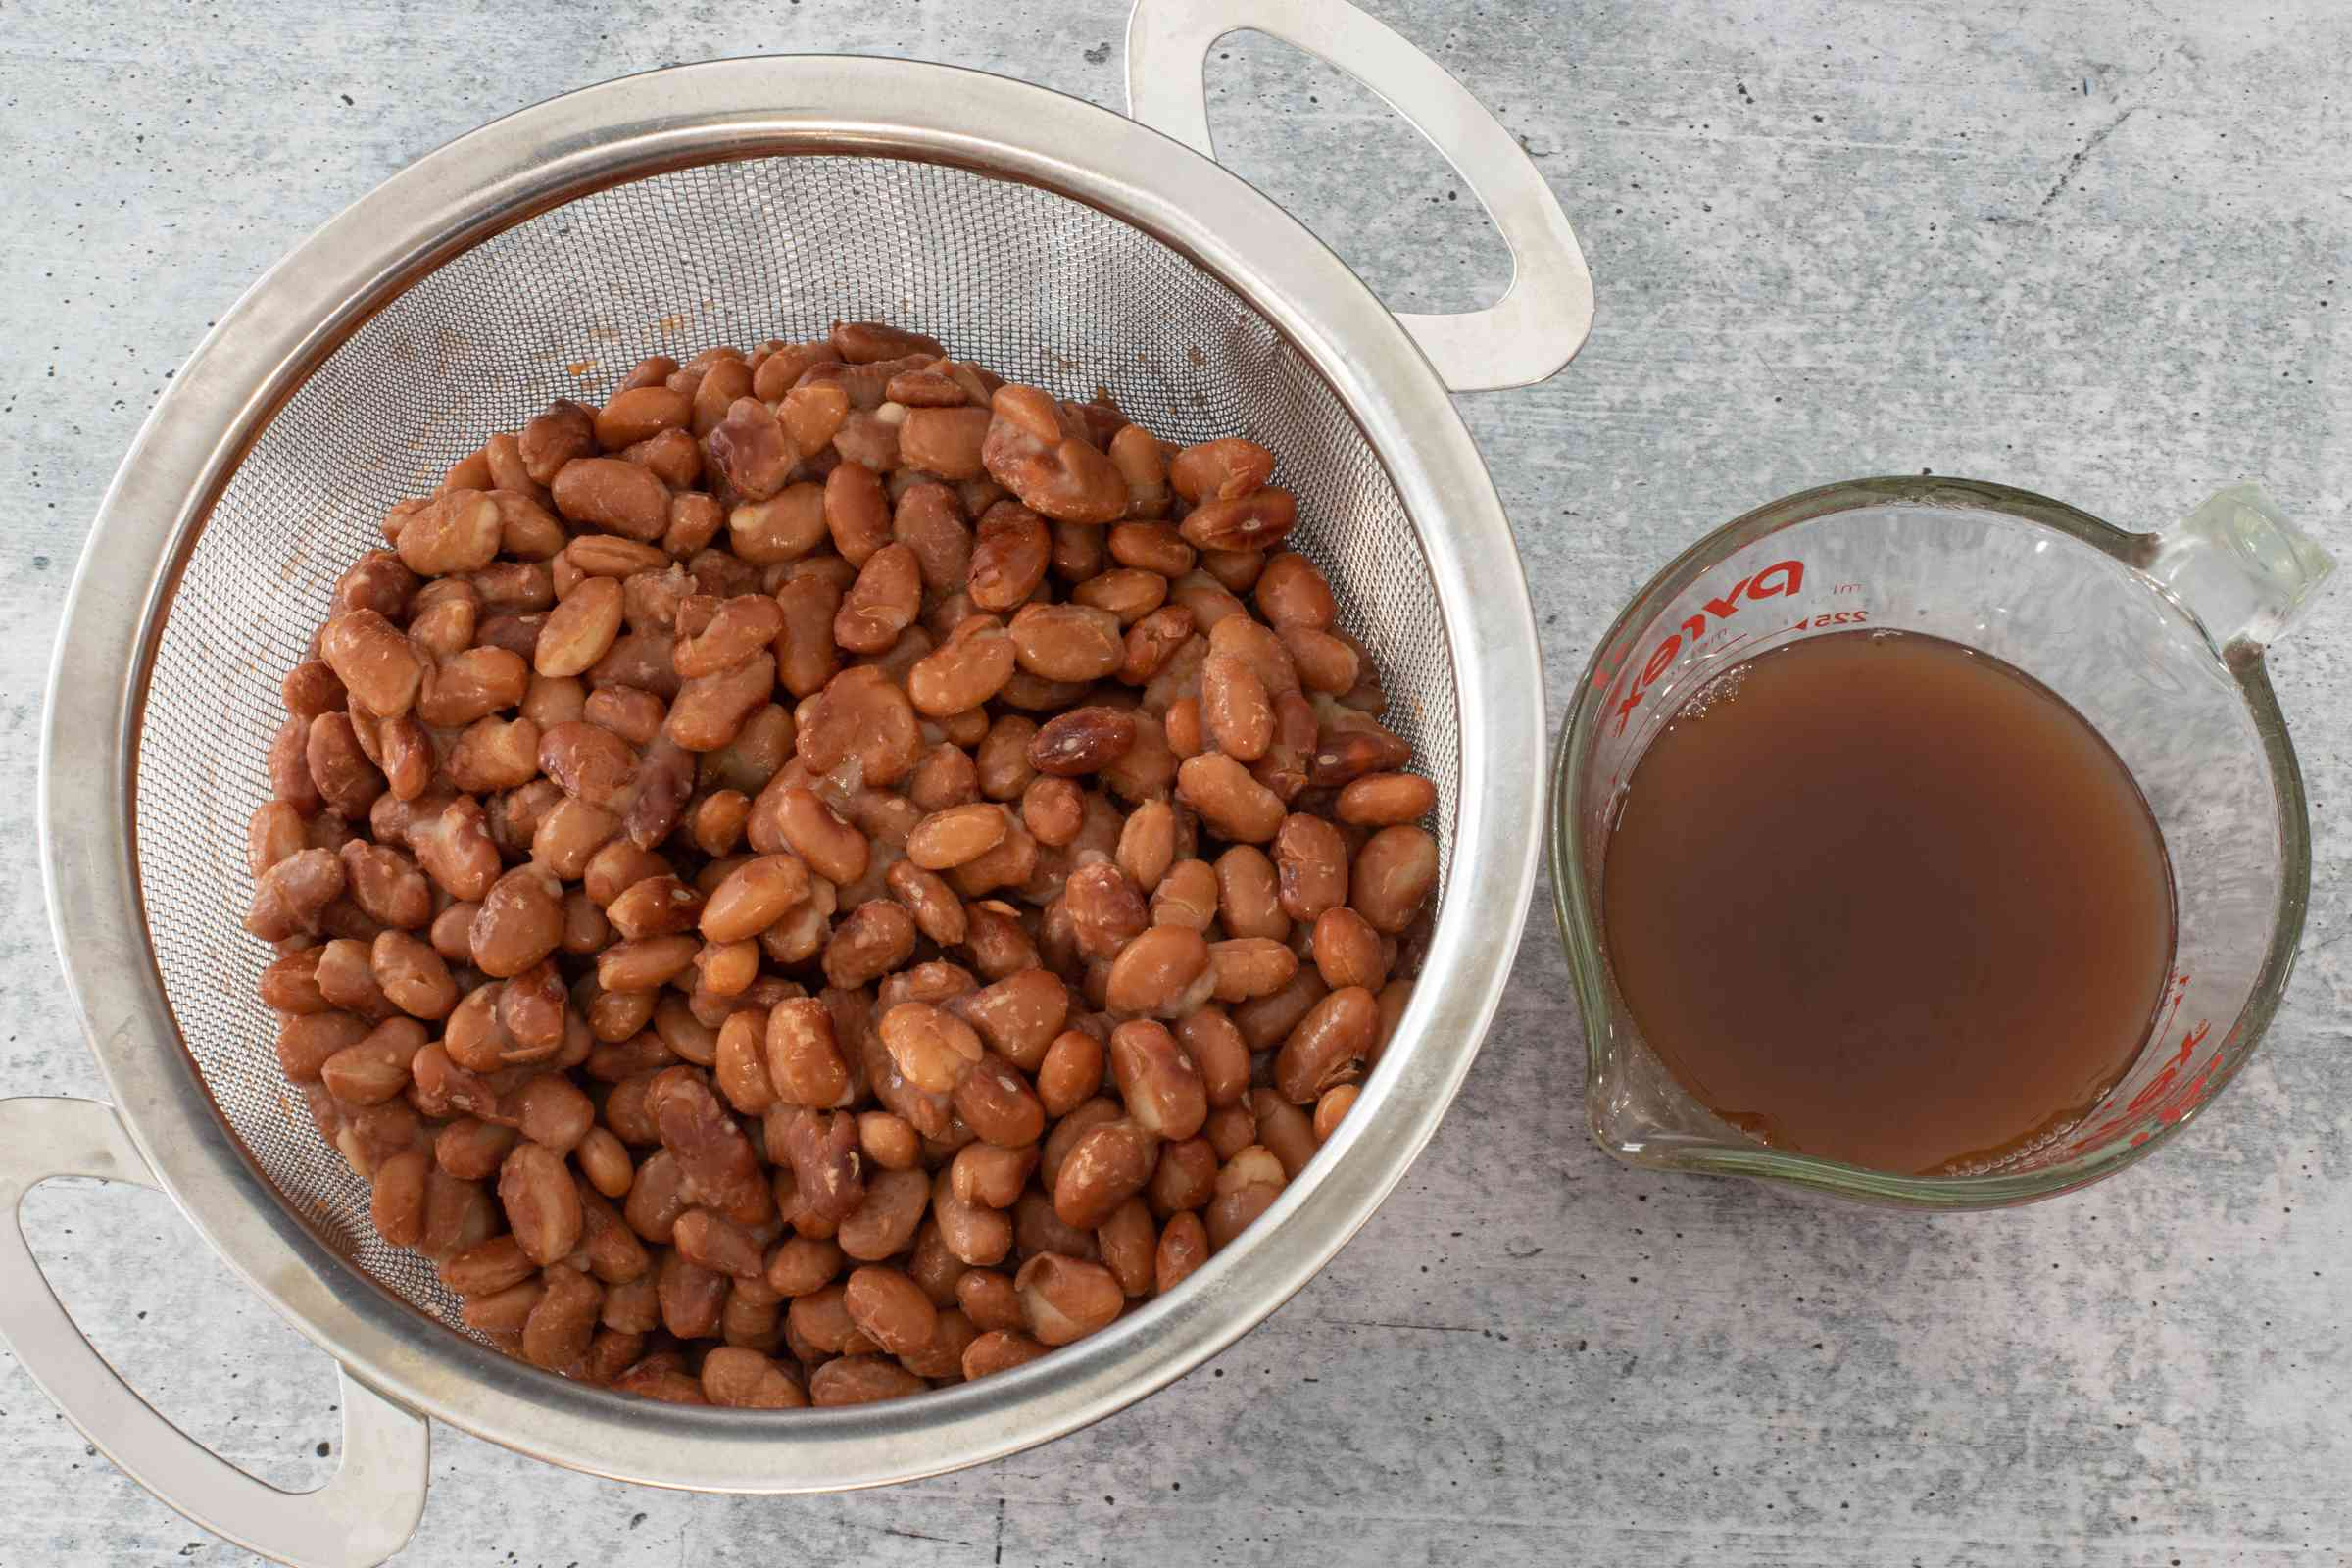 drain the beans and reserve 1 cup of the liquid